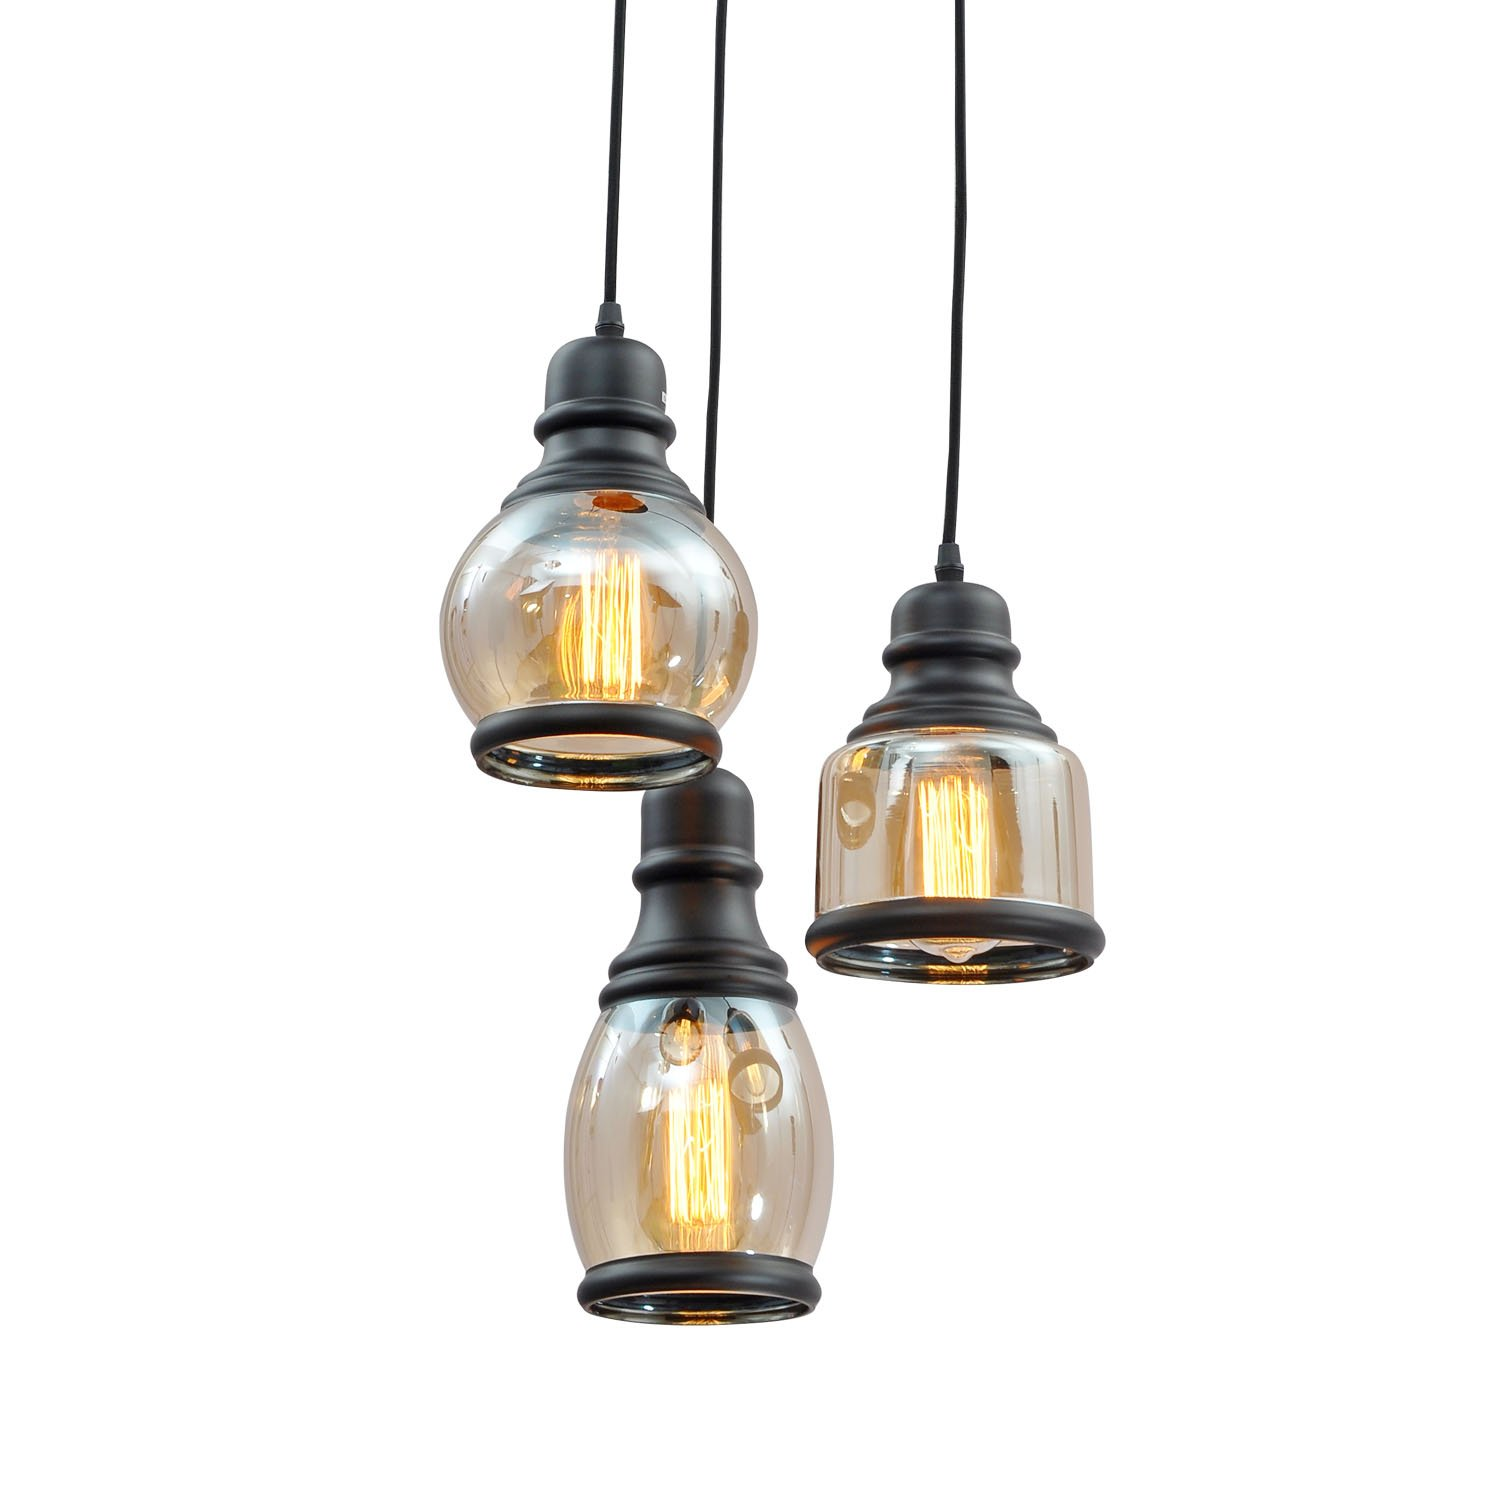 antique pendant lighting. Unitary Brand Antique Black Shade Glass Jar Pendant Light Max 120W With 3 Lights Painted Finish - Amazon.com Lighting S